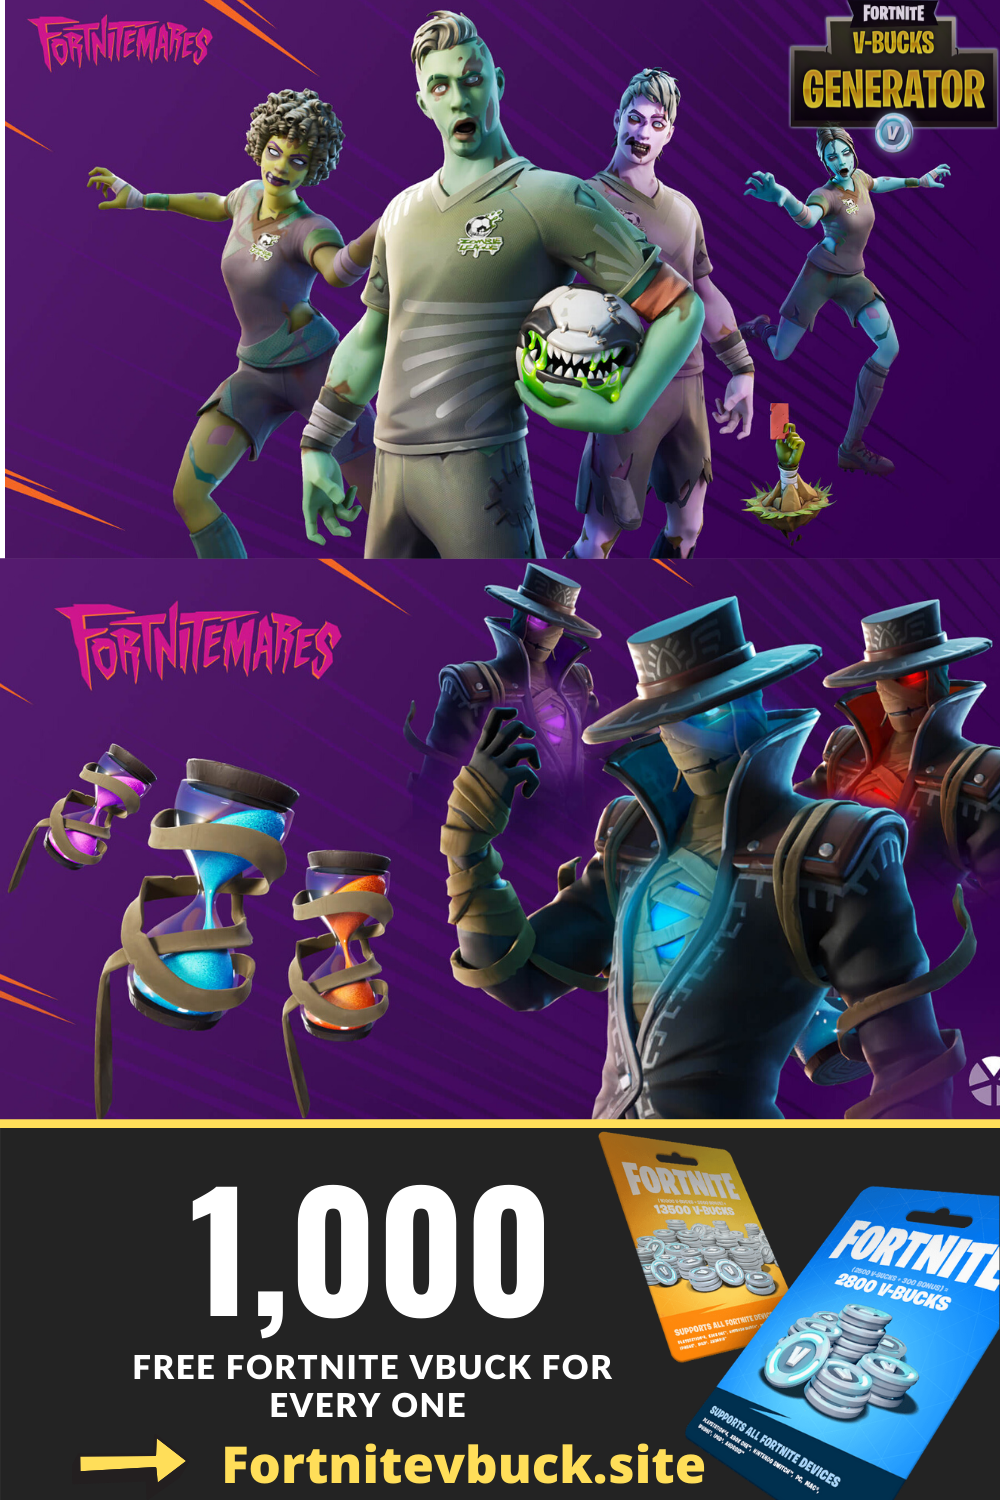 Fortnite Sauver Le Monde Gratuit : fortnite, sauver, monde, gratuit, Loading, OfGET, #FORTNITE, VBUCKS, TODAY!, 👇👇👇👇👇👇👇👇👇👇👇👇👇👇👇👇👇👇👇fer..